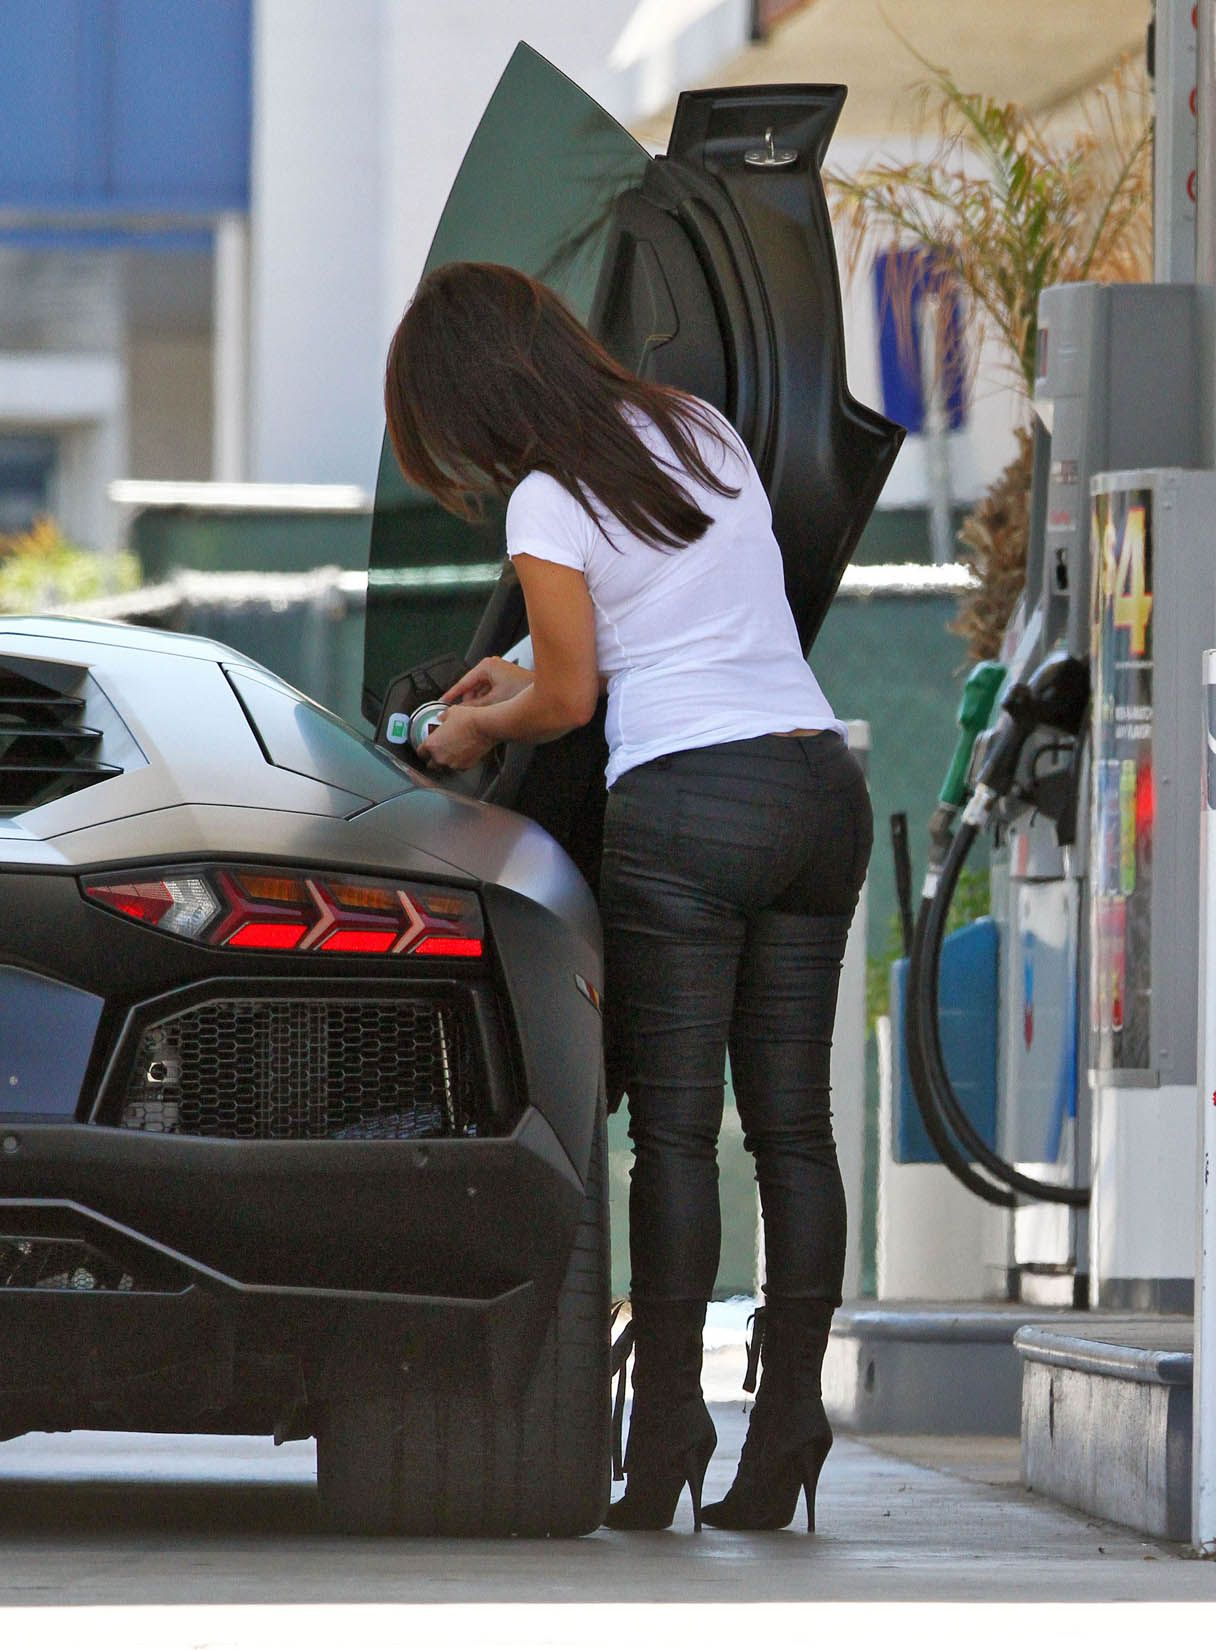 Two of the best asses I've ever seen:o